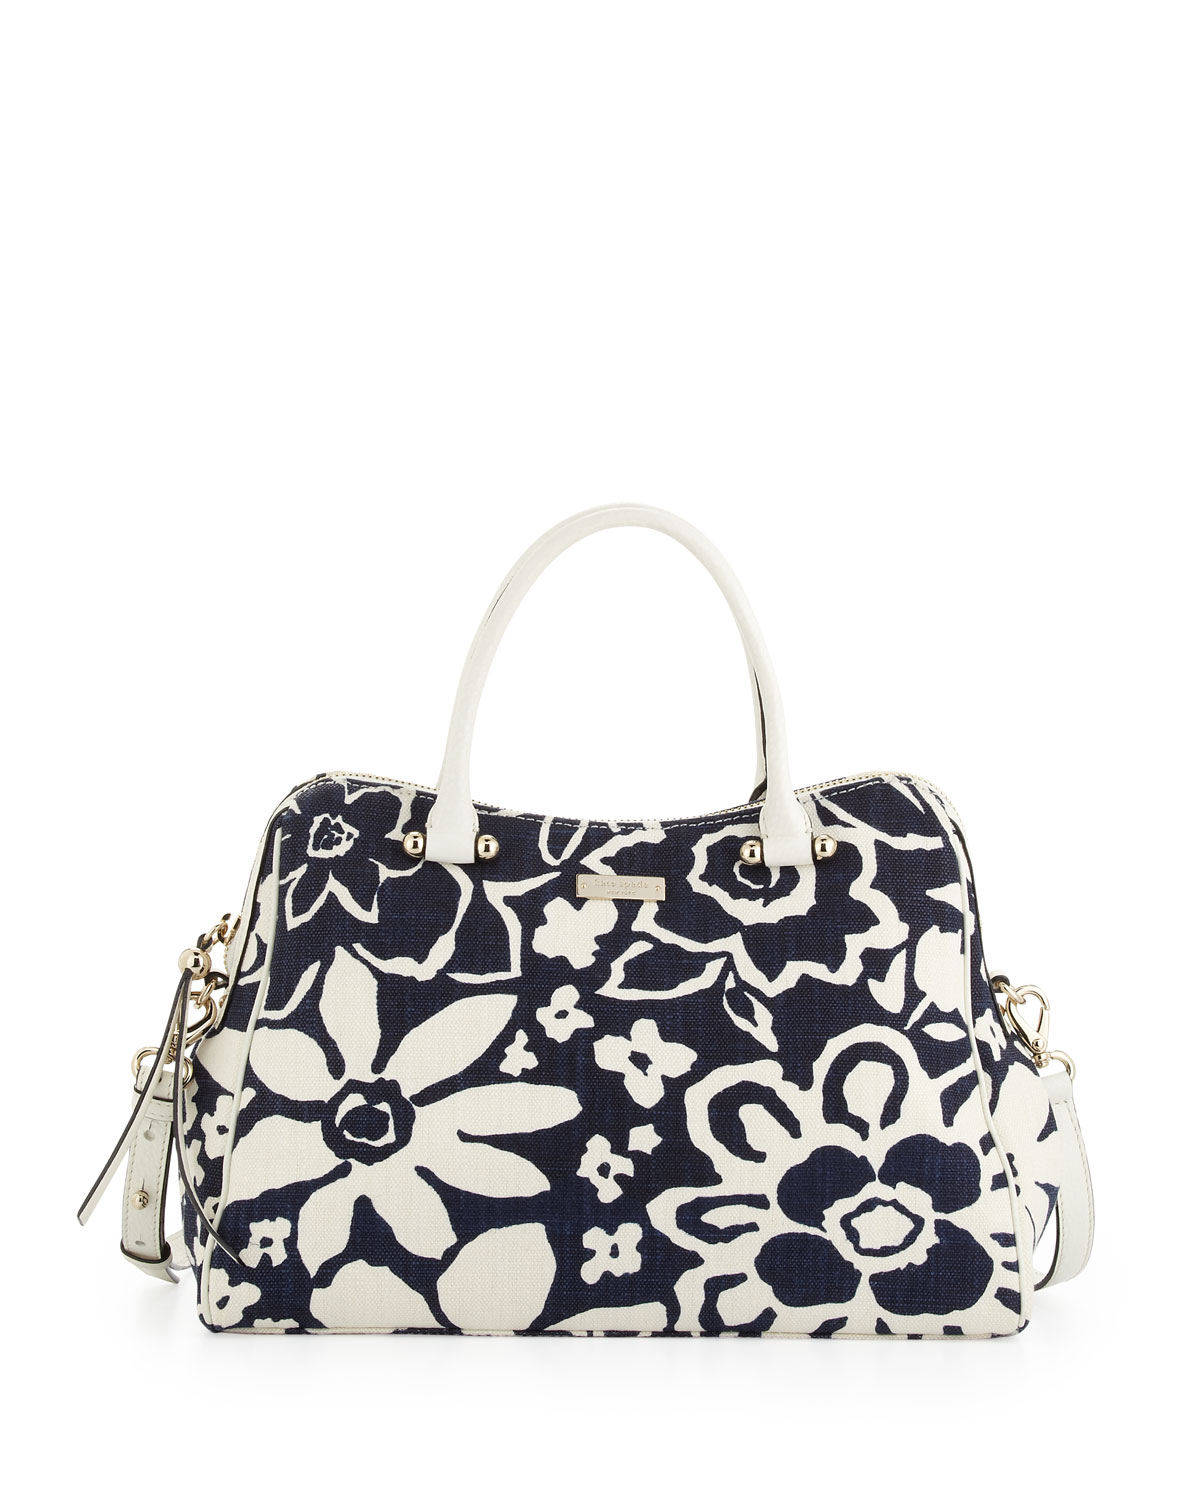 Kate Spade Charles Street Audrey Floralprint Tote Bag French Navy In Blue (FRENCH NAVY) | Lyst